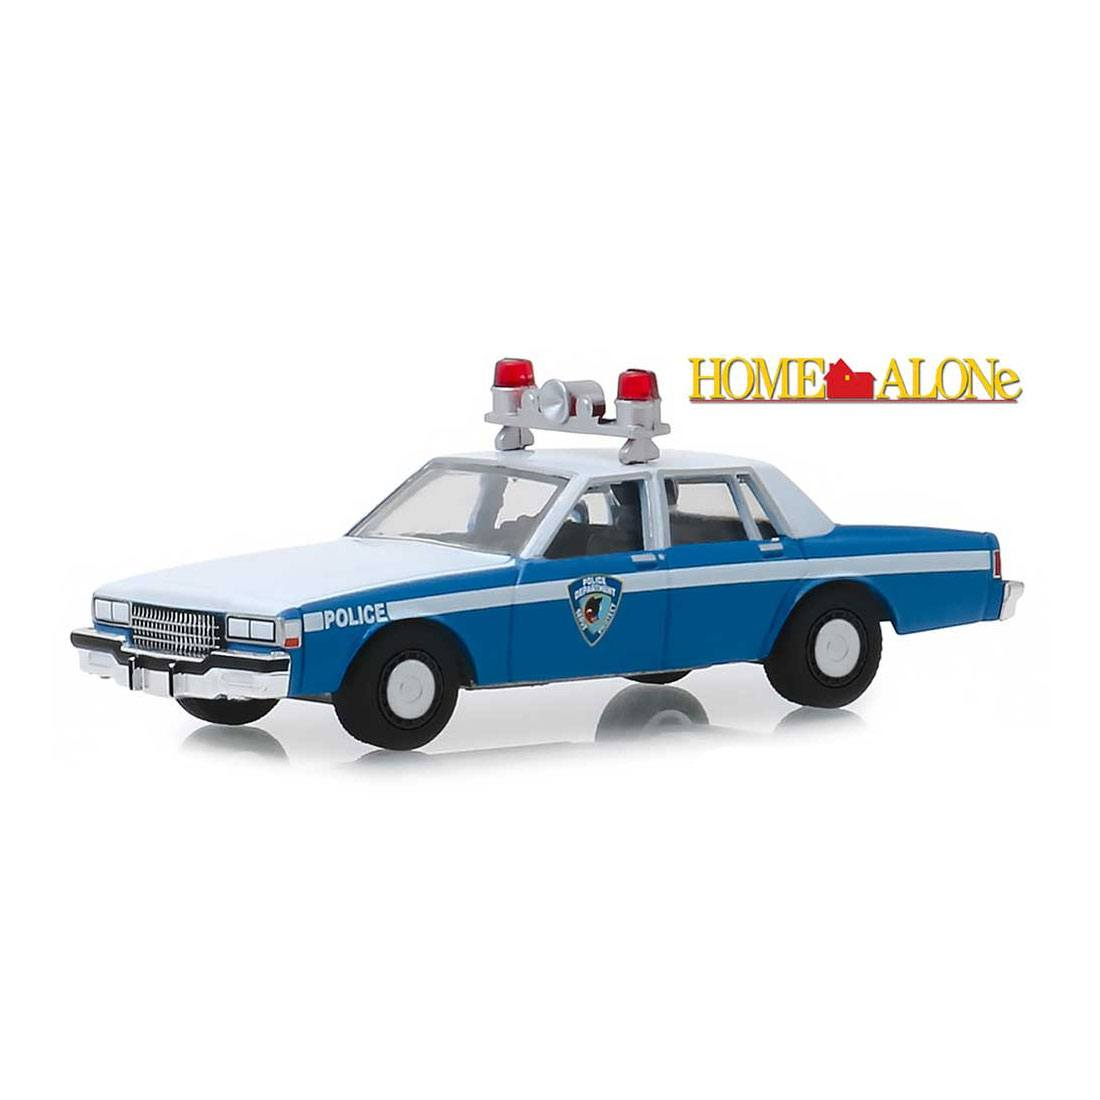 Home Alone Diecast Model 1/64 1986 Chevrolet Caprice Wilmette Illinois Police